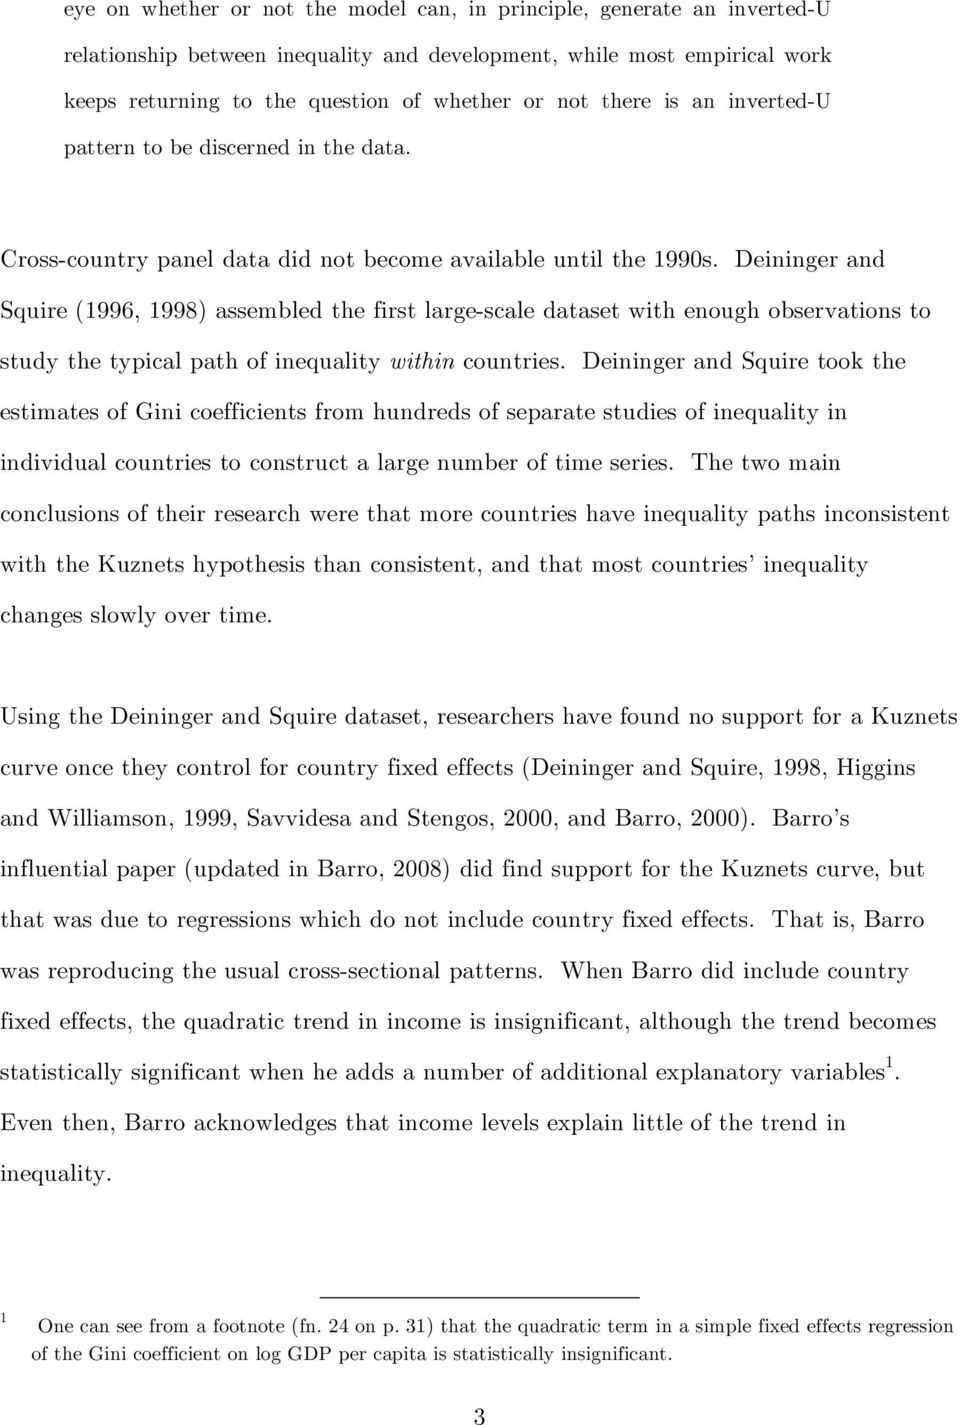 Deininger and Squire (1996, 1998) assembled the first large-scale dataset with enough observations to study the typical path of inequality within countries.